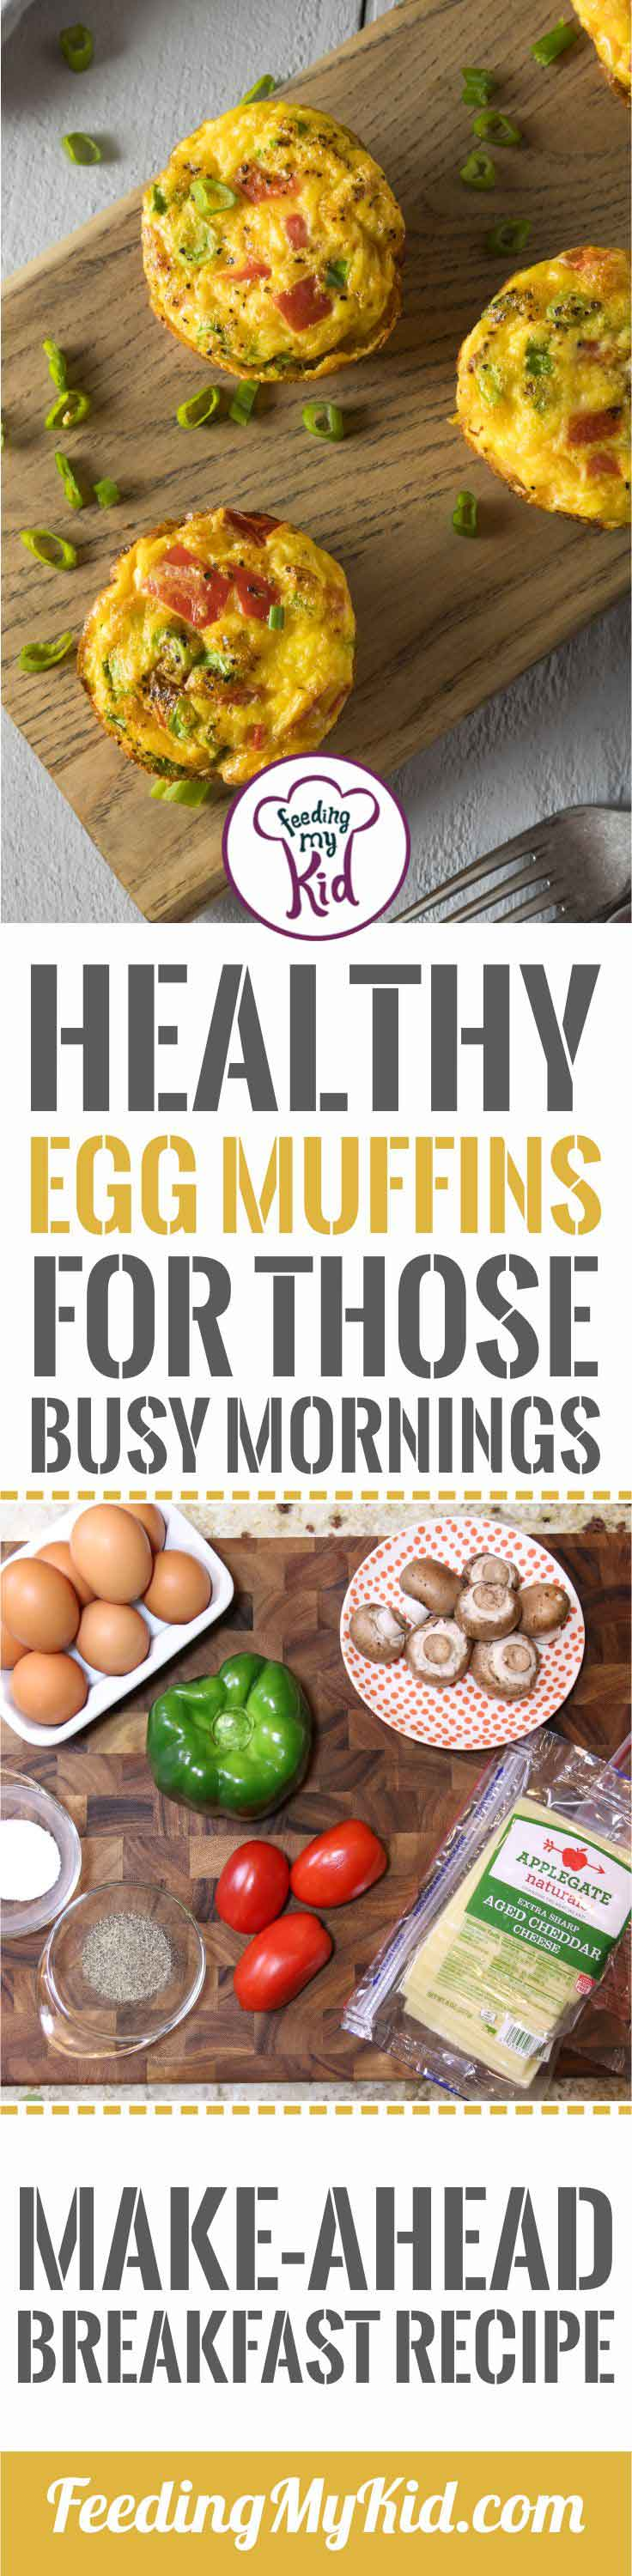 These egg muffins are so easy to put together. Prep the night before, and grab and go in the morning. An easy and healthy breakfast!